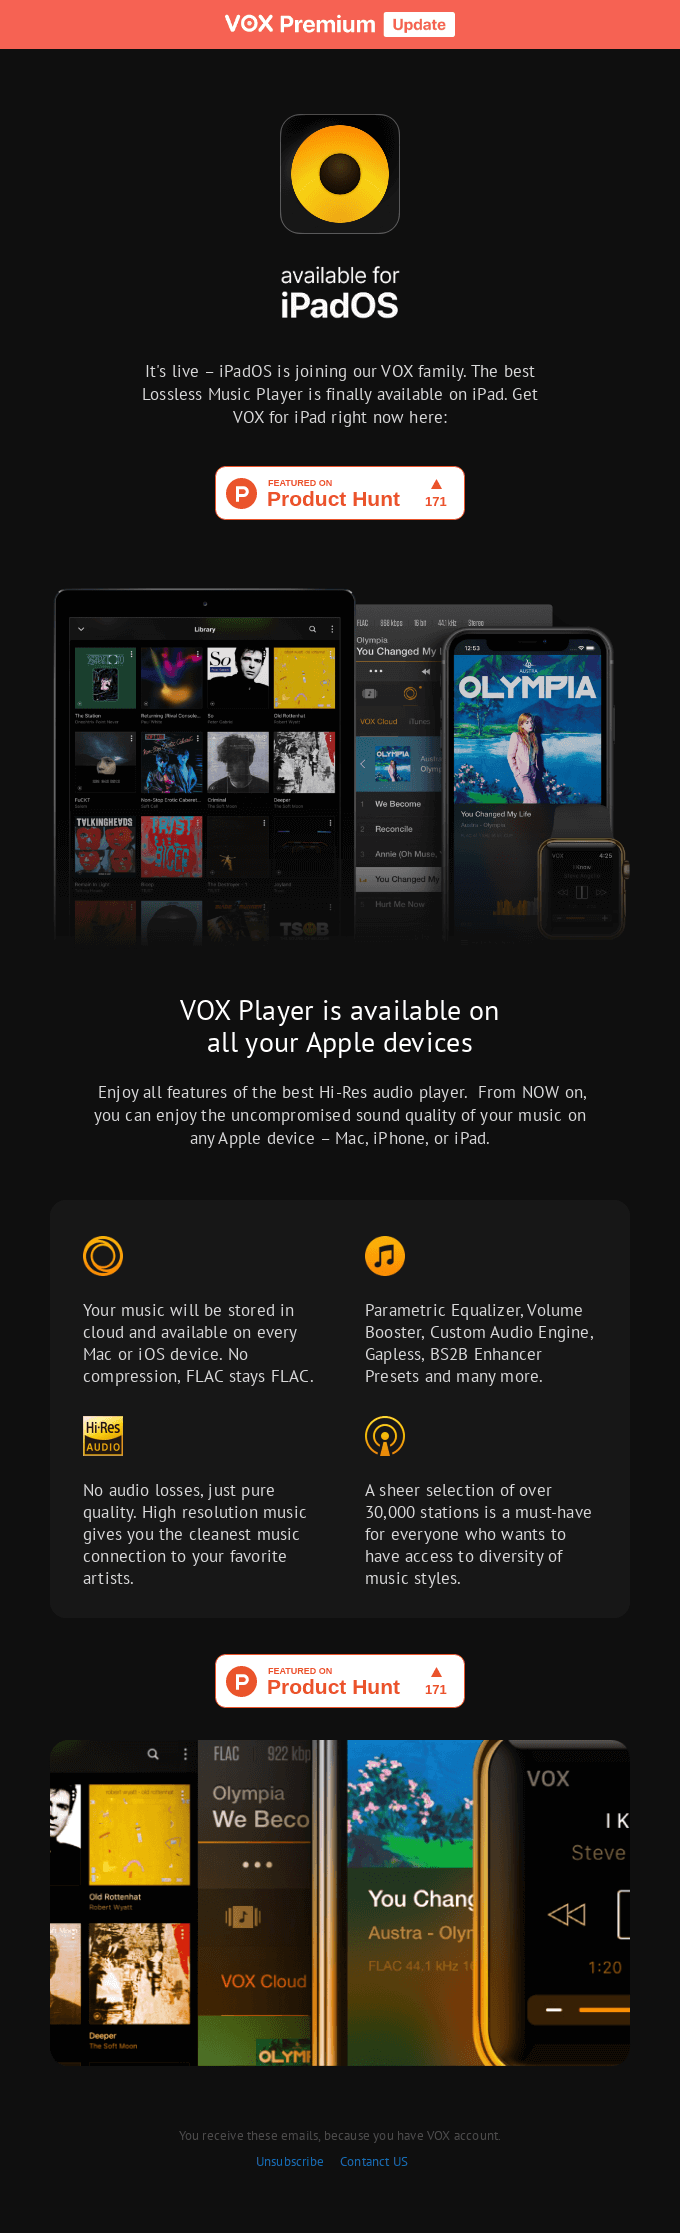 It's here. VOX for iPadOS. Try it now!